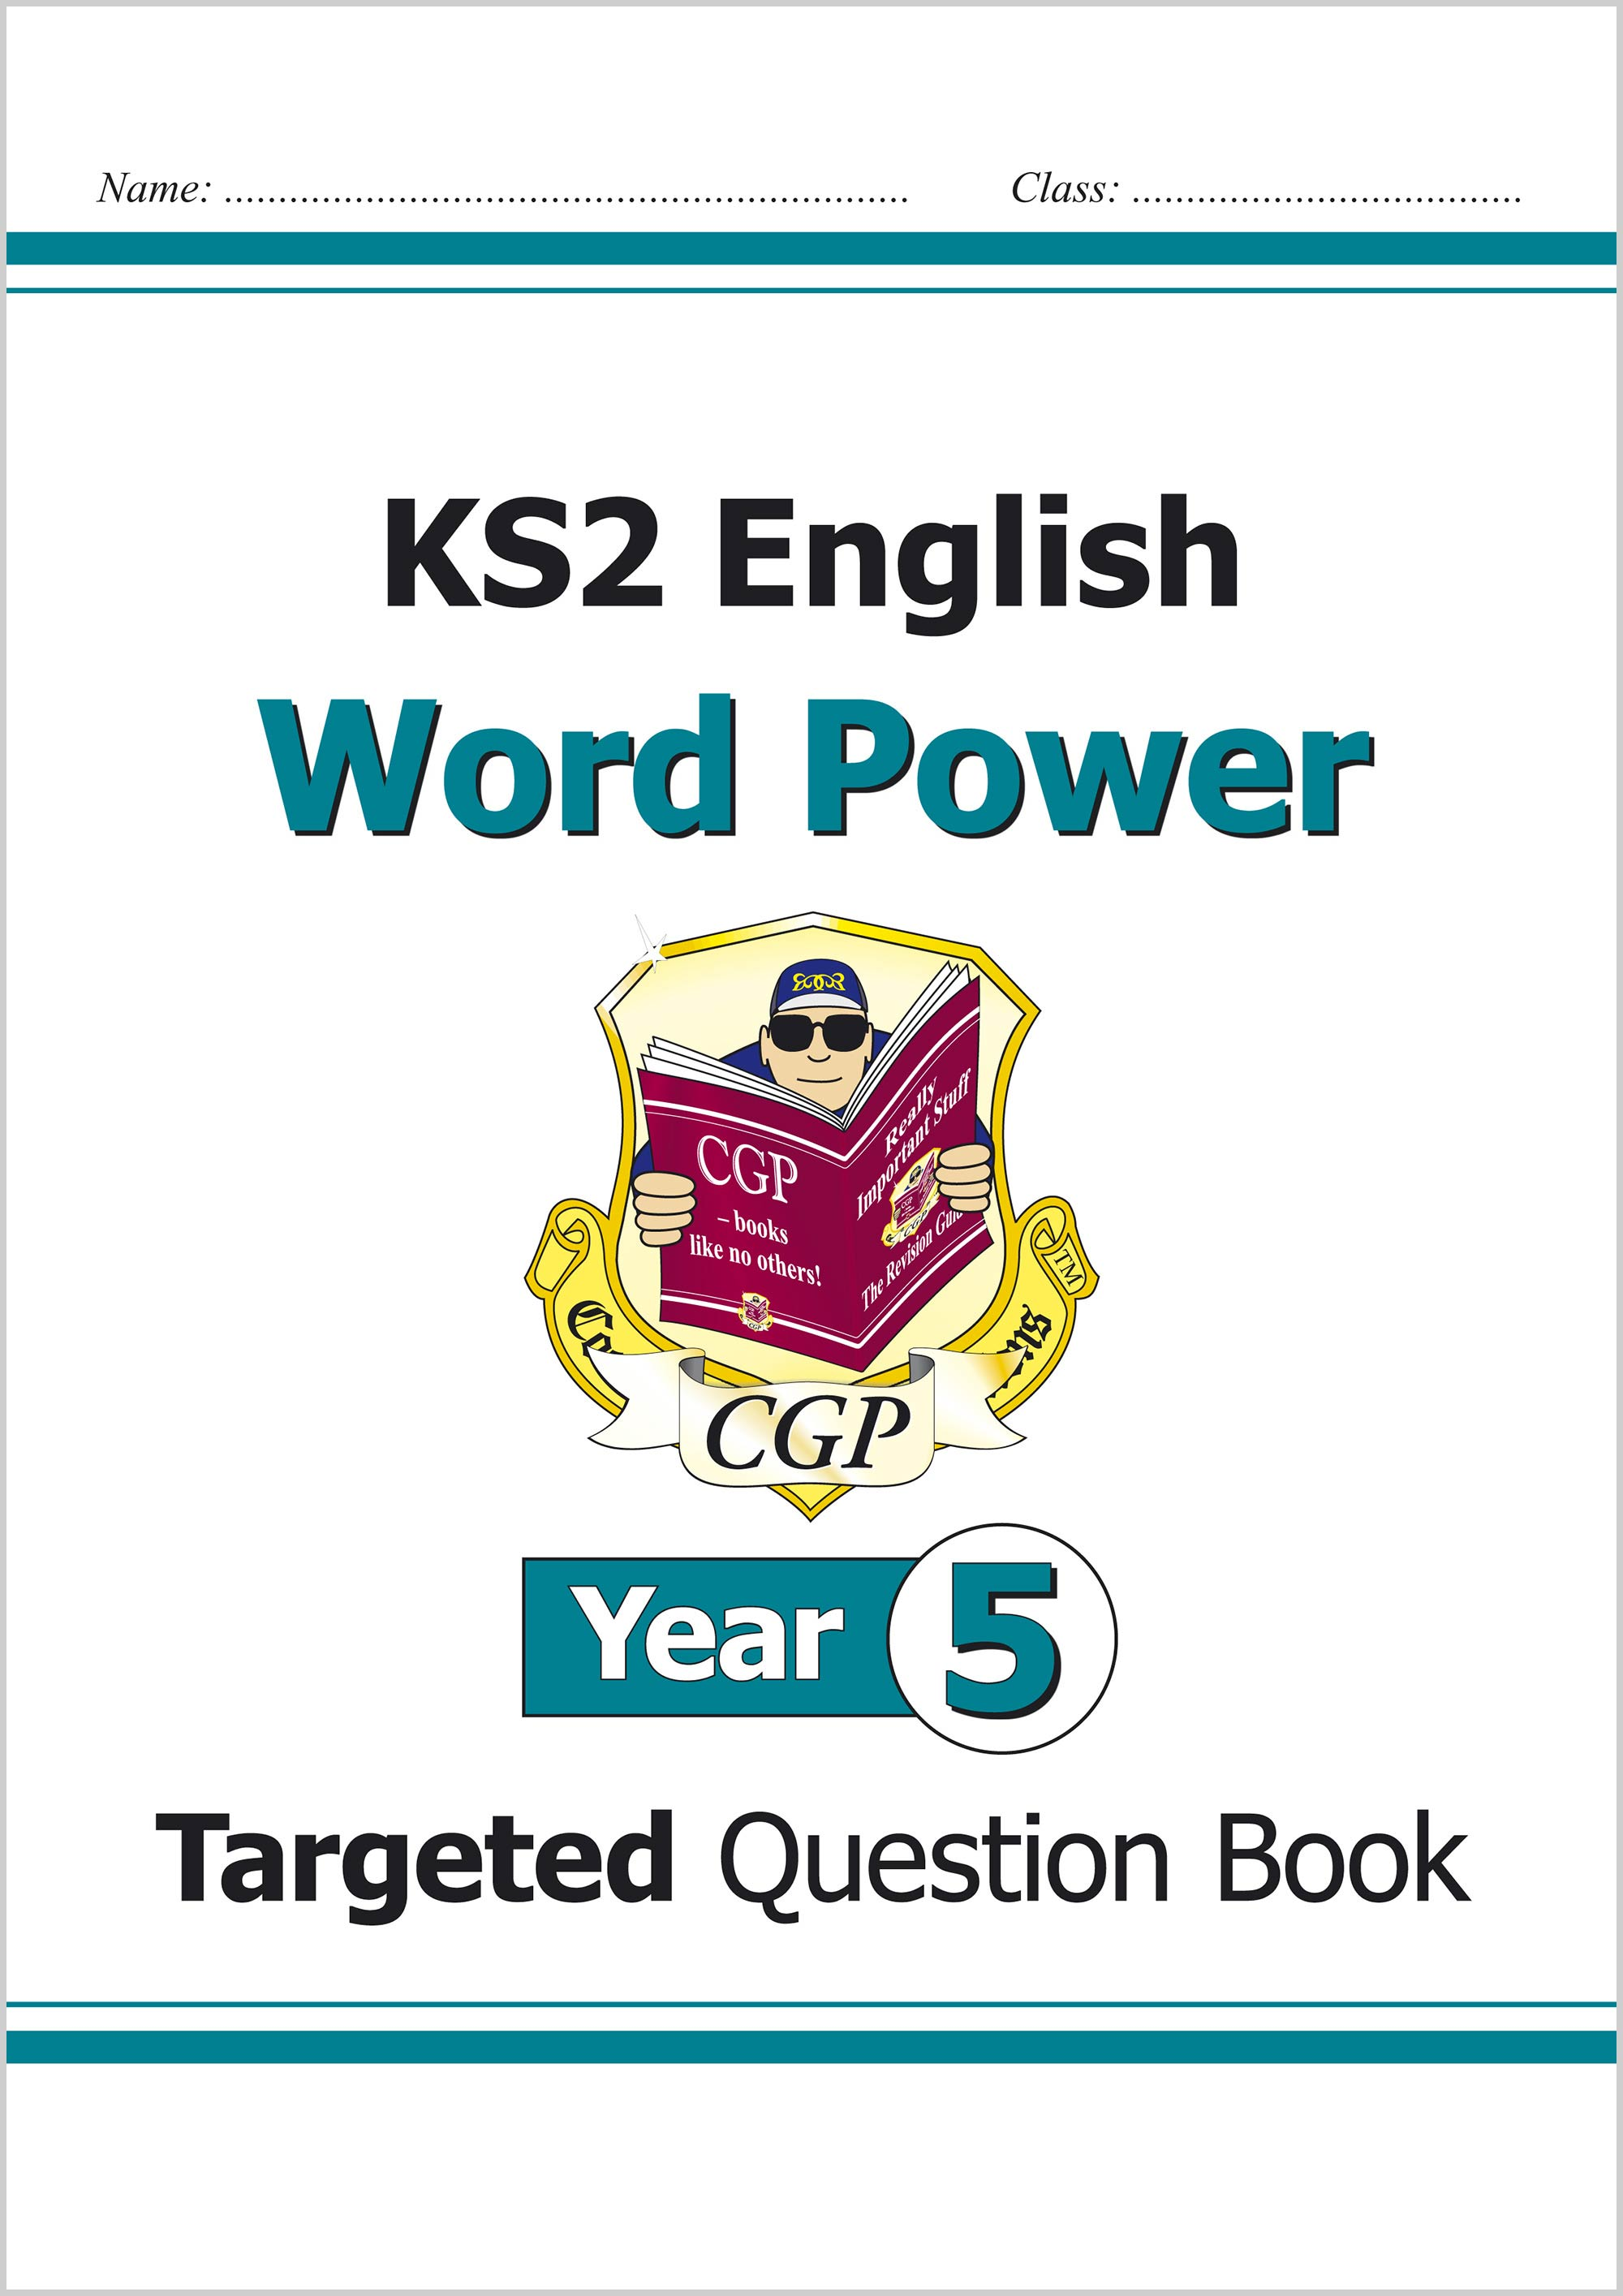 E5WPW21 - KS2 English Targeted Question Book: Word Power - Year 5